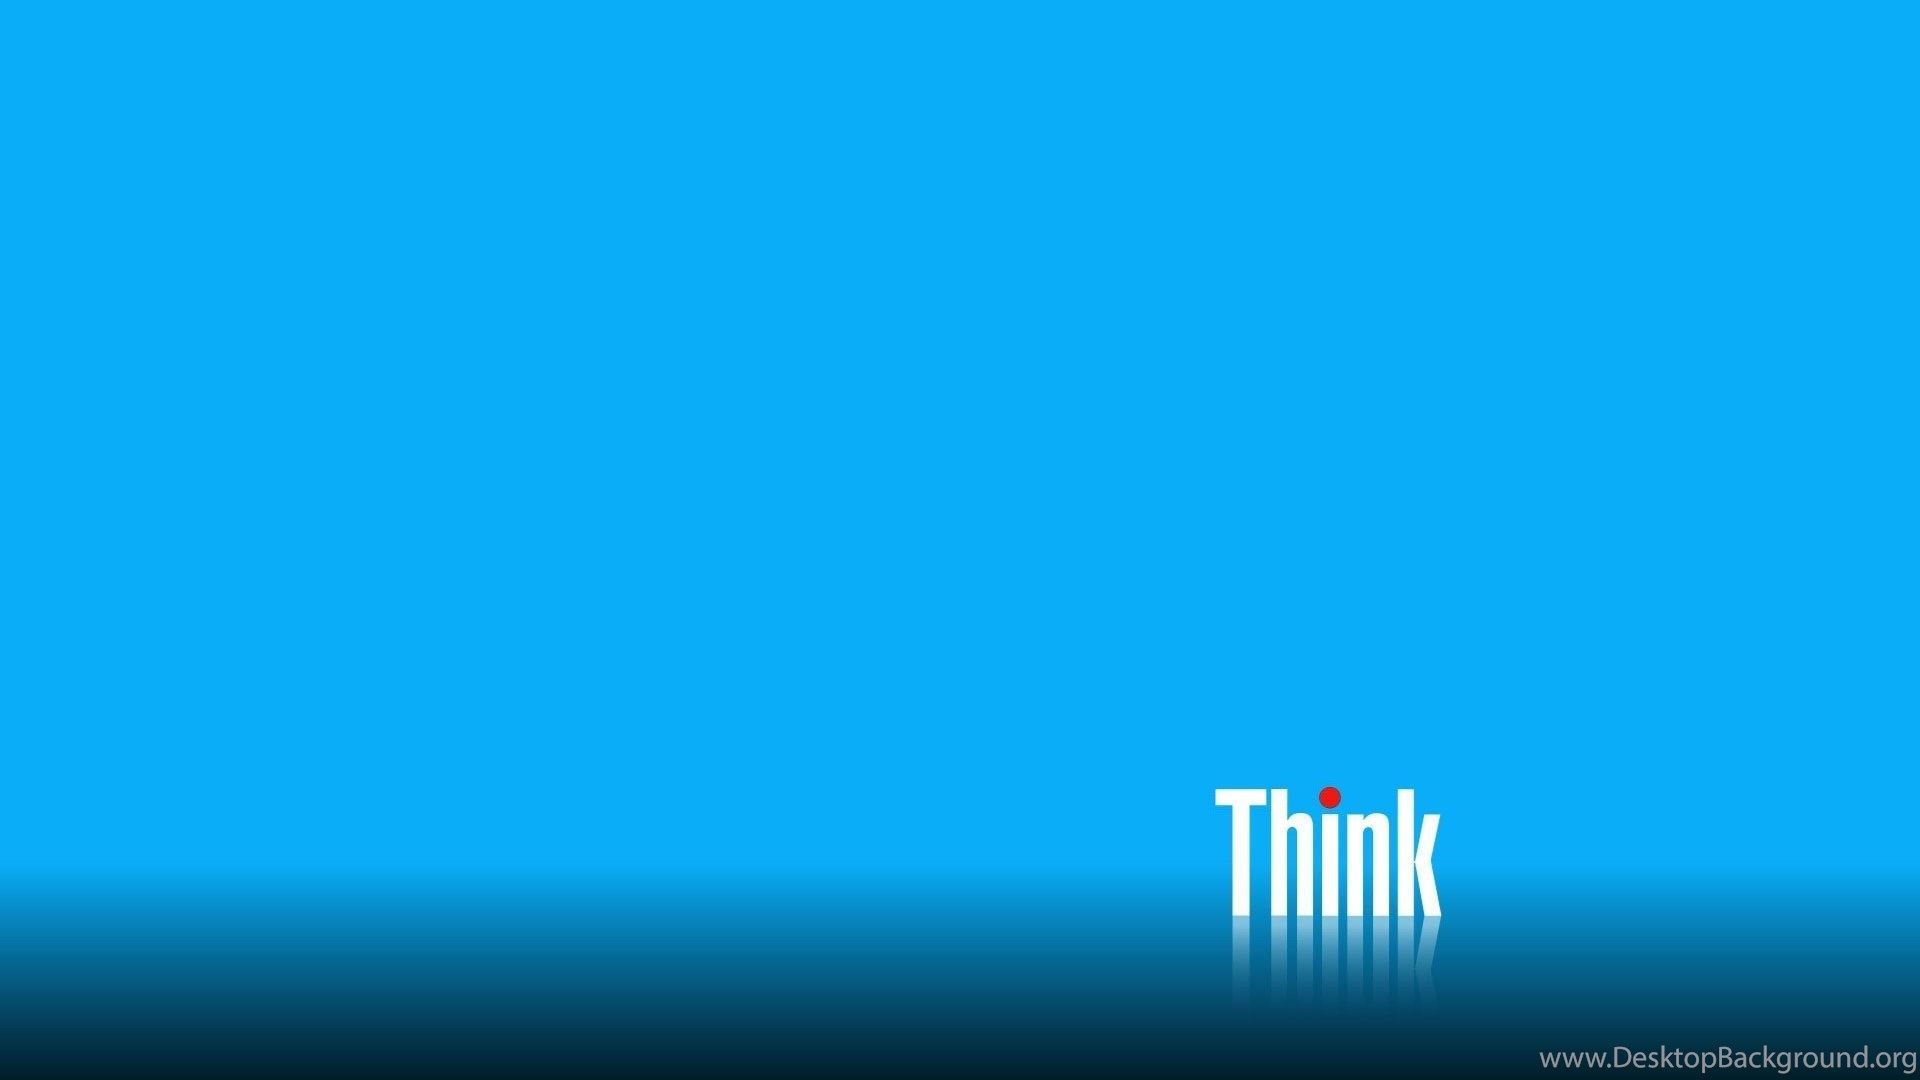 Wallpaper Lenovo Think Computer Blue Backgrounds Wallpapers